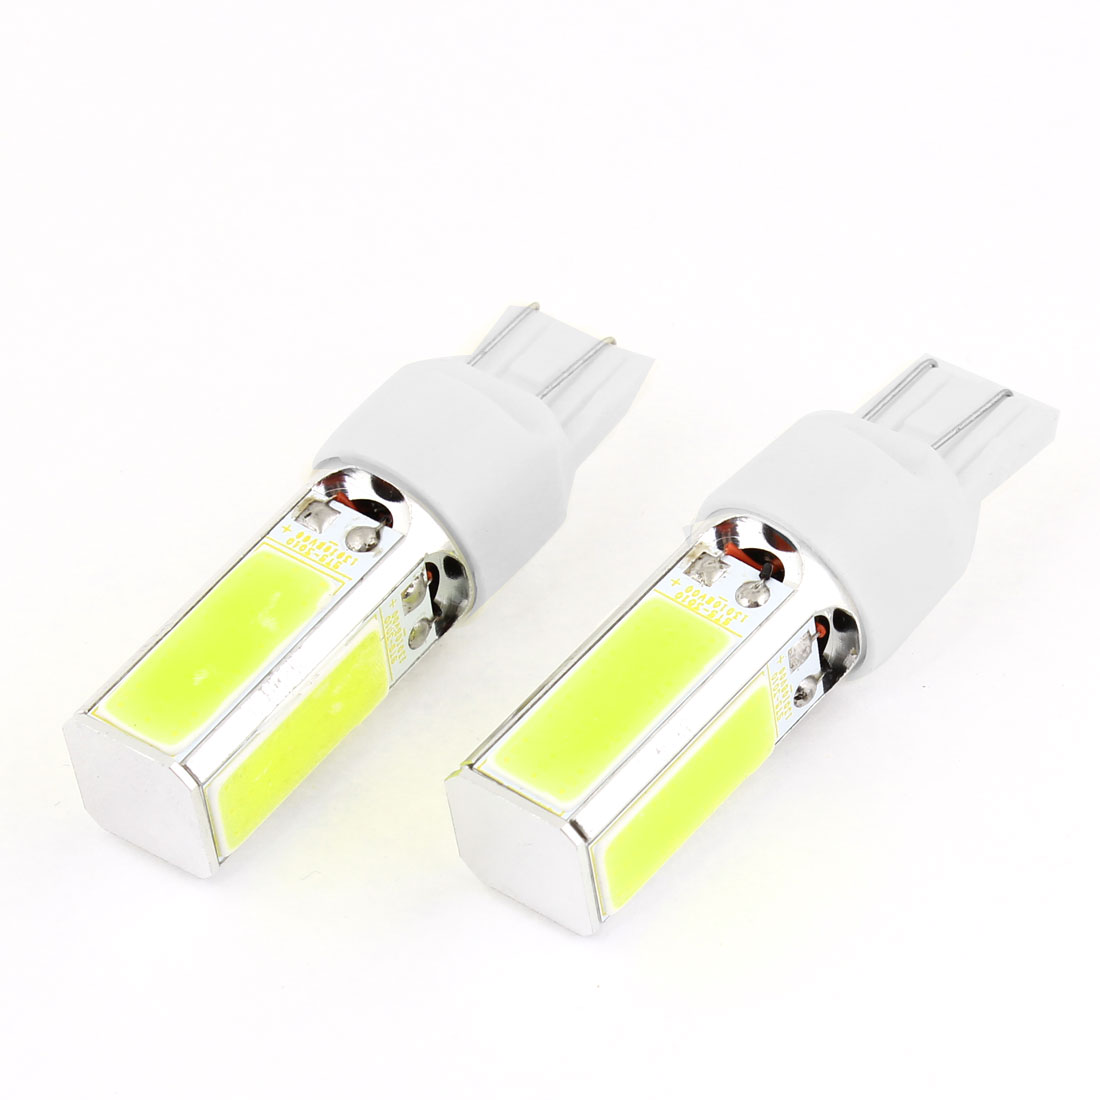 Car No Error High Power 15W 48 COB Chip LED Backup Light Bulb White 7443 x 2